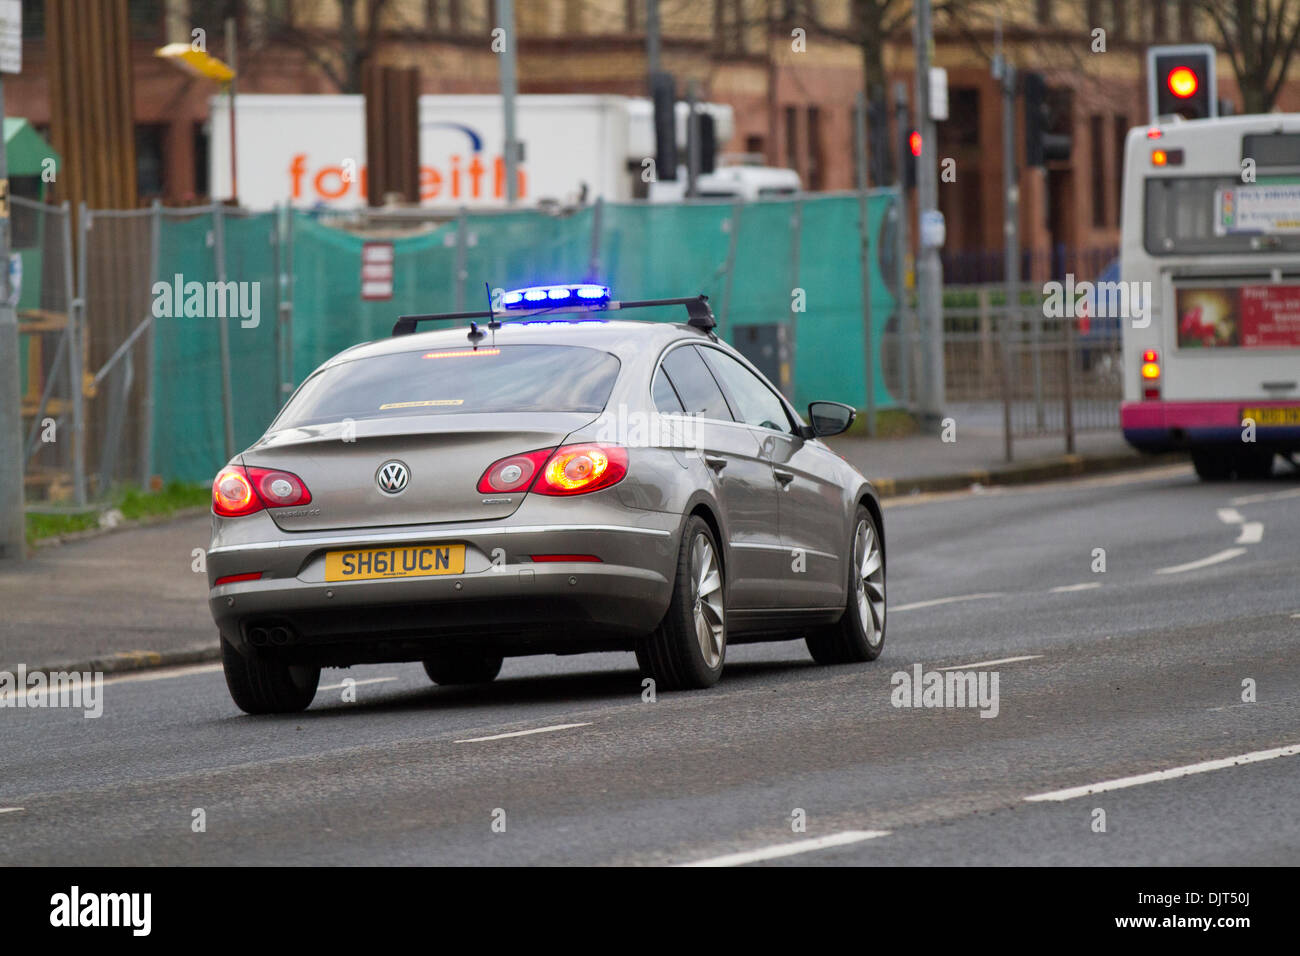 Unmarked Police car Strathclyde police UK speeding to a scene with blue lights flashing. Glasgow, Scotland, UK Stock Photo